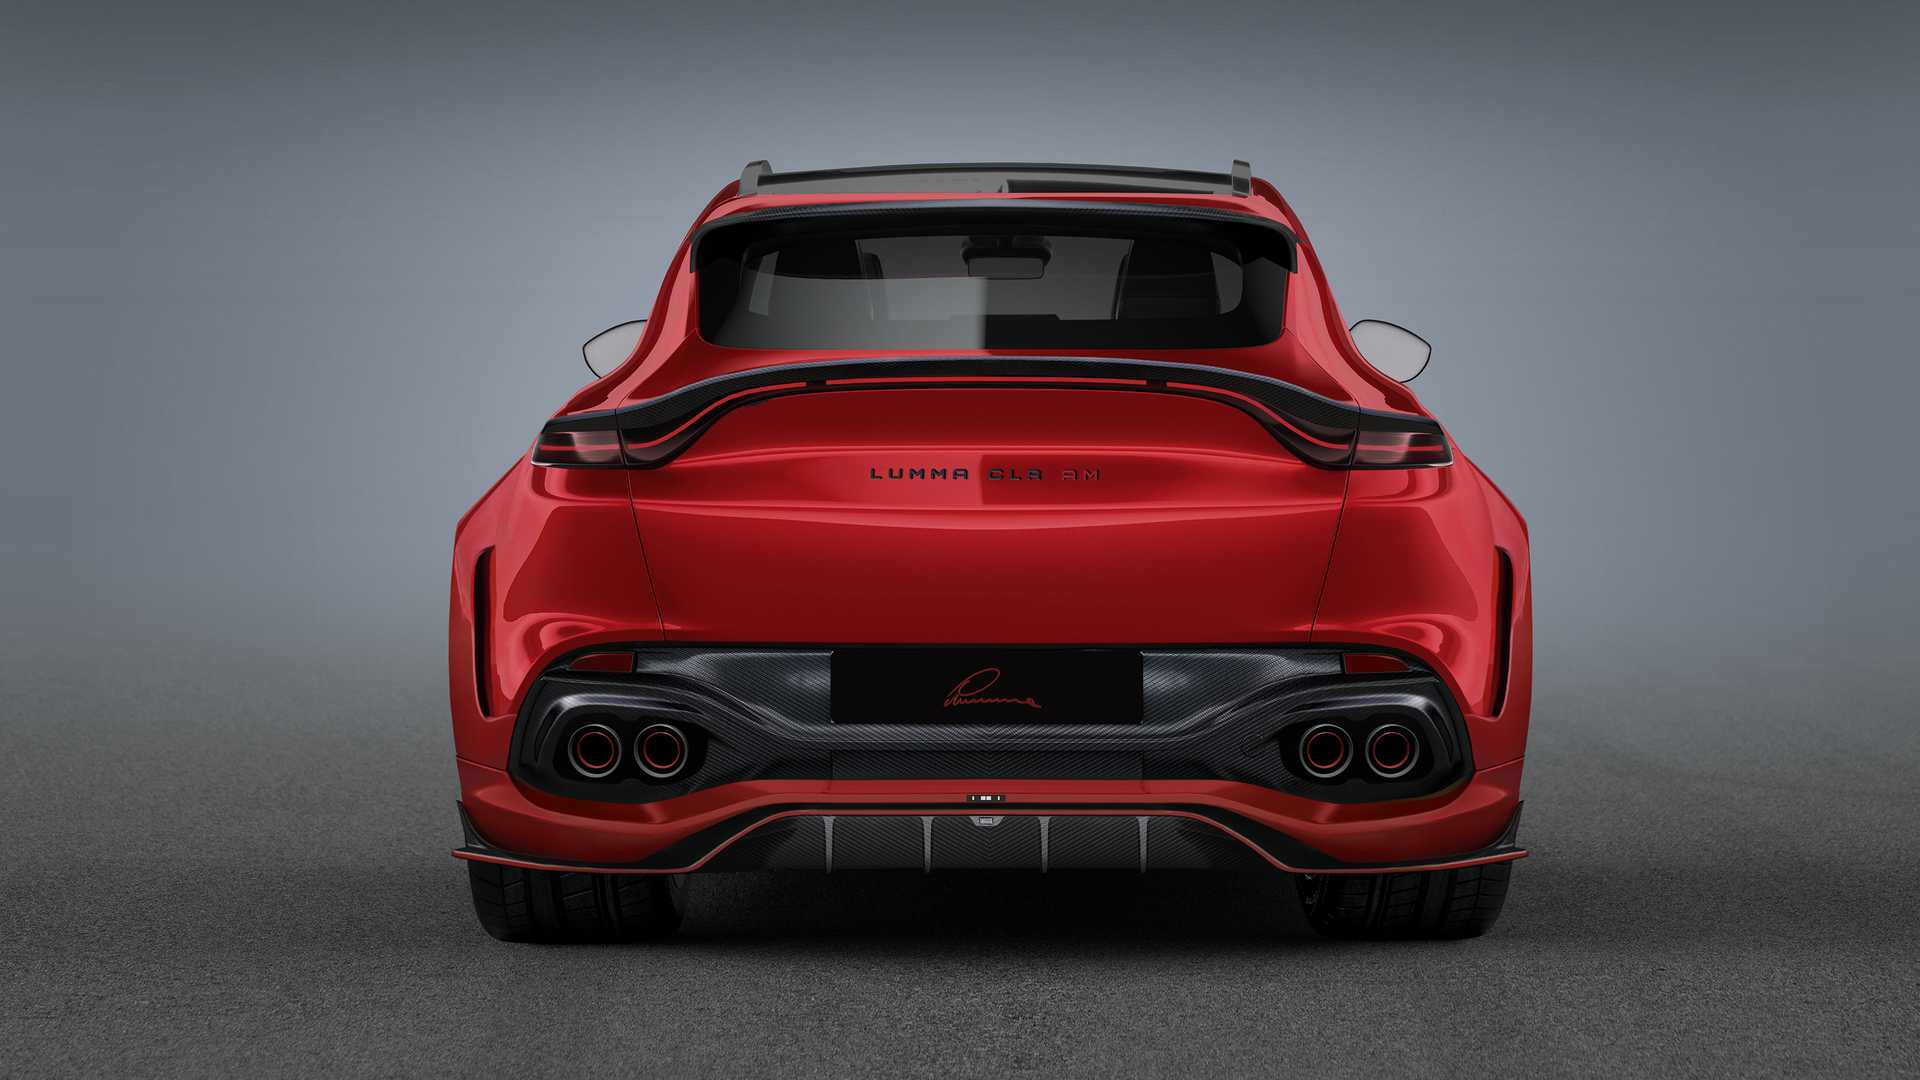 aston-martin-dbx-by-lumma-design-9